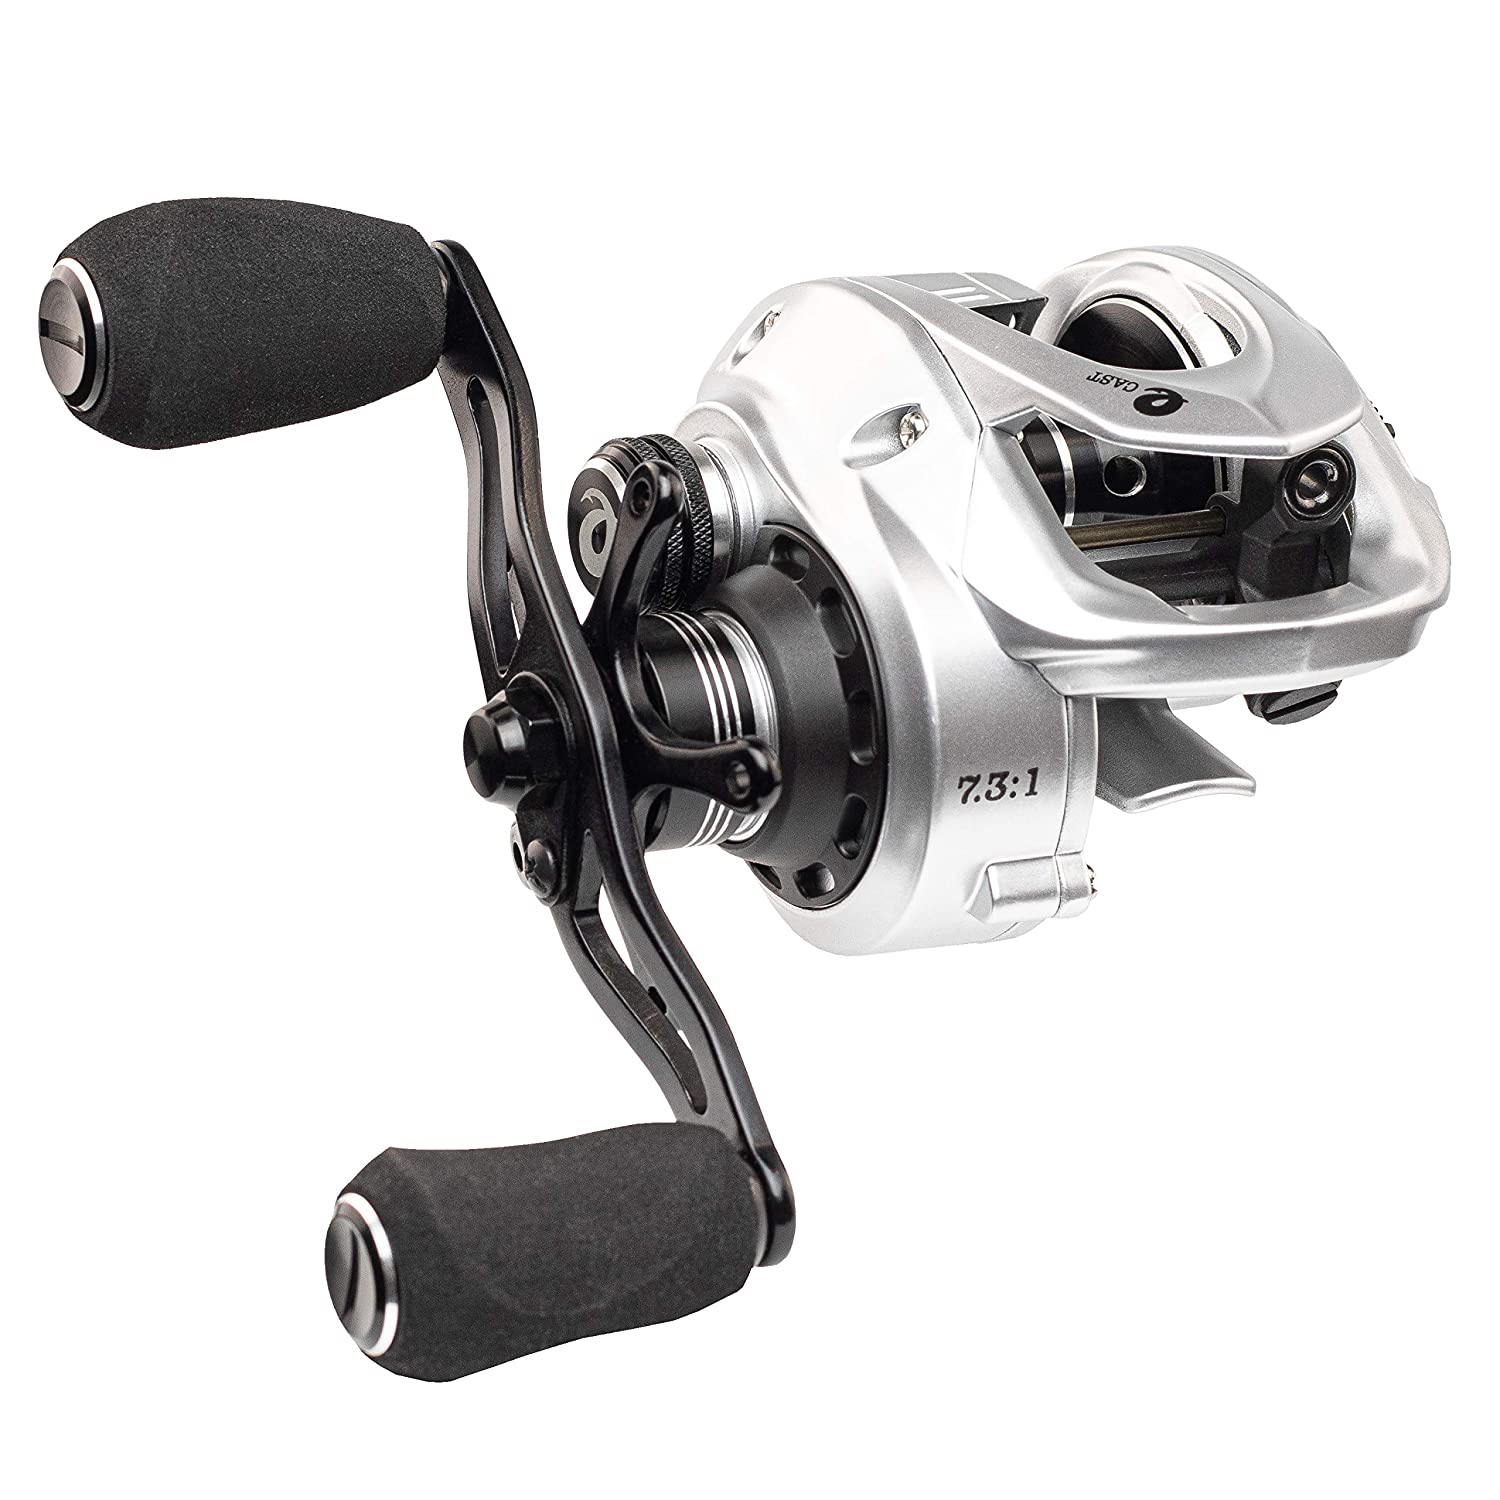 Enigma Fishing Baitcasting Reel High Speed, Low Profile, with Carbon Fiber Drag Adjustable Magnetic Brakes Your Choice of Gear Ratio E-CAST EC-100